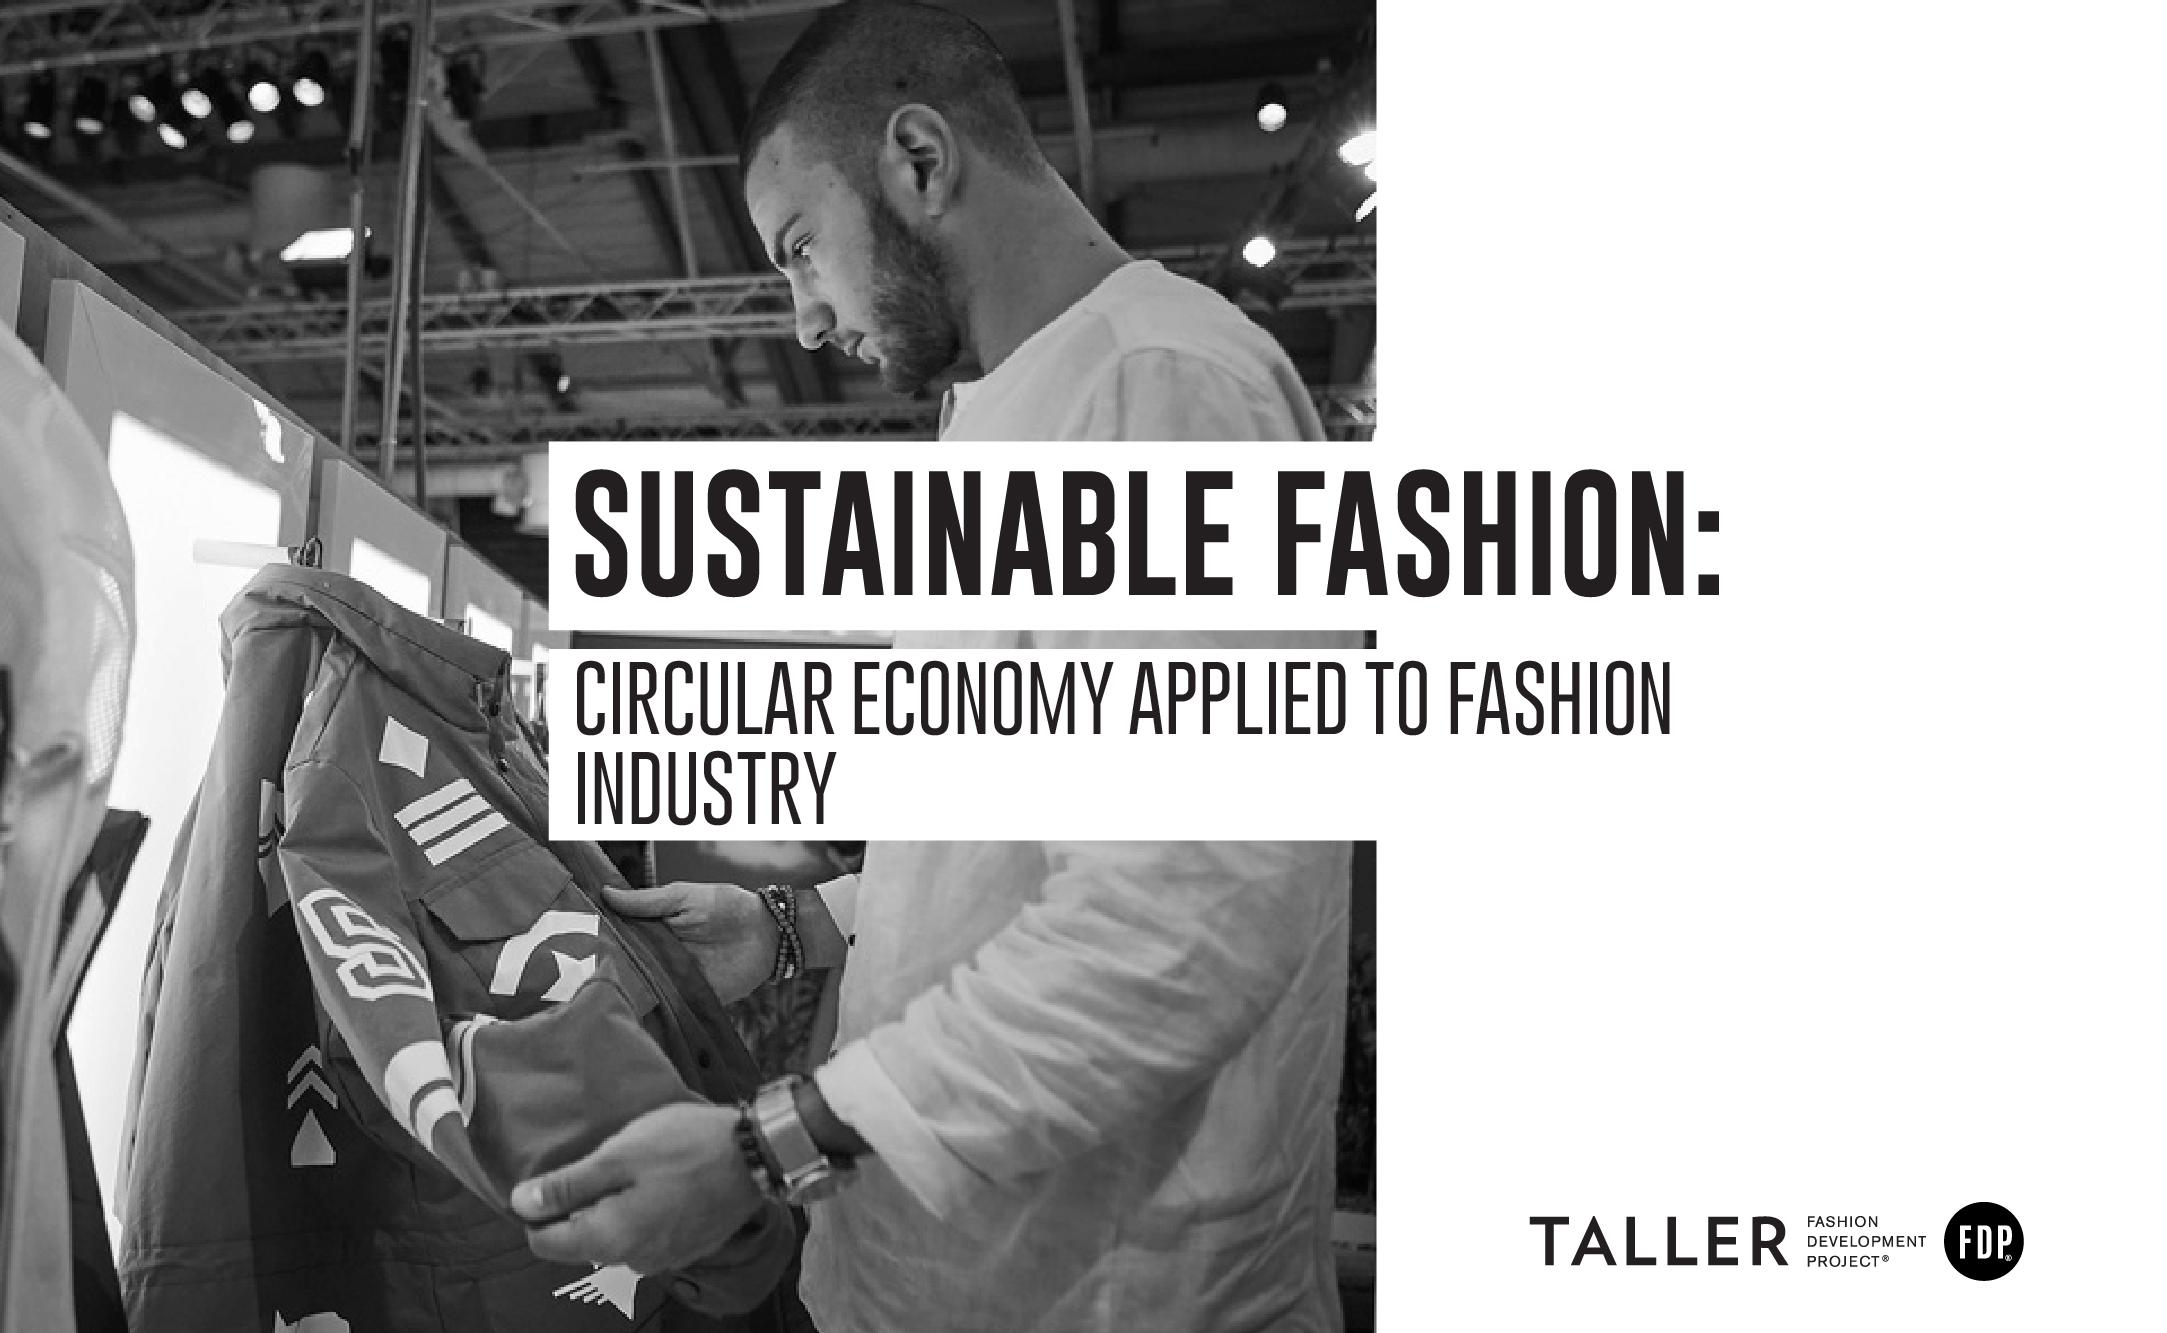 Sustainable Fashion: Circular economy applied to fashion industry.